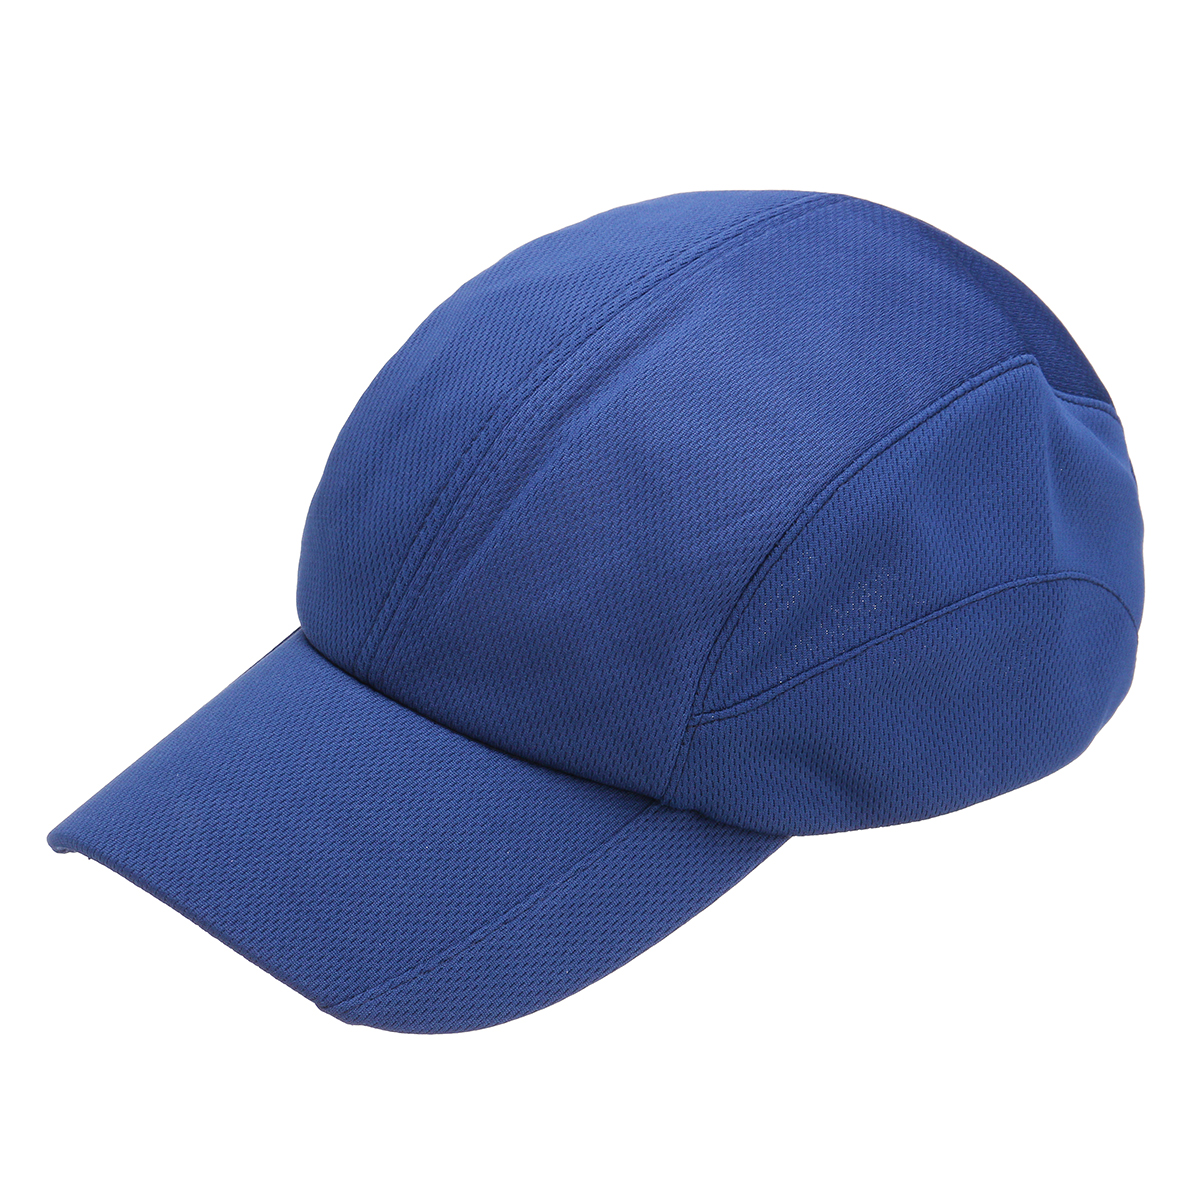 Unisex Adjustable Cooling Baseball Cap Cooling Sun Protection Ca